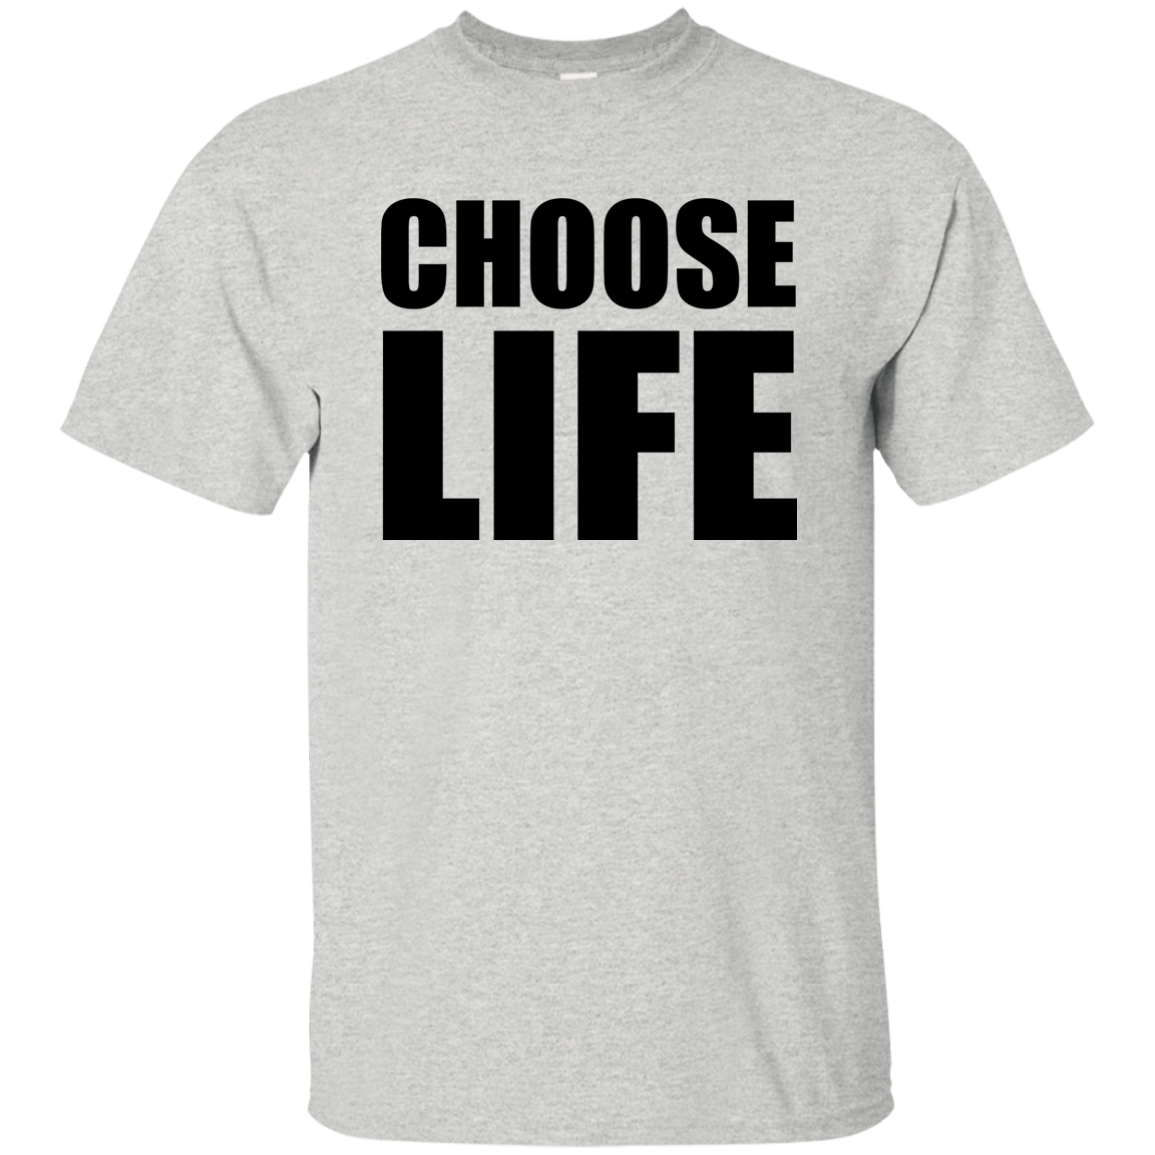 Choose Life George Michael Wham T Shirt, Choose Life T Shirt